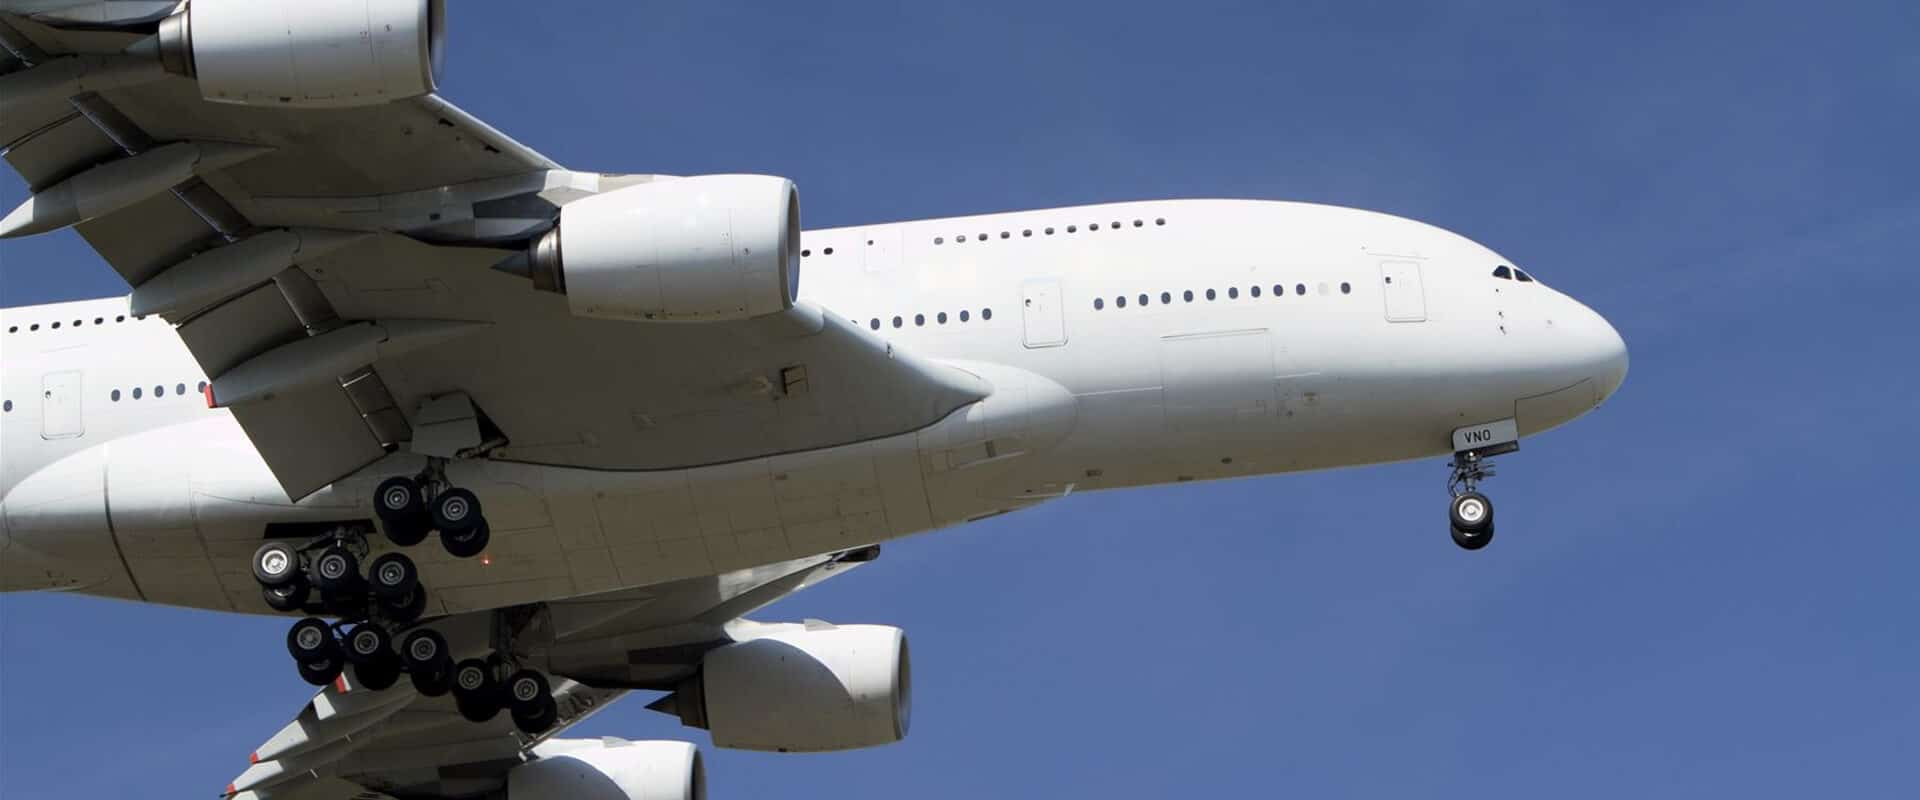 3. Commercial and Millitairy Aircraft - Market - thumb